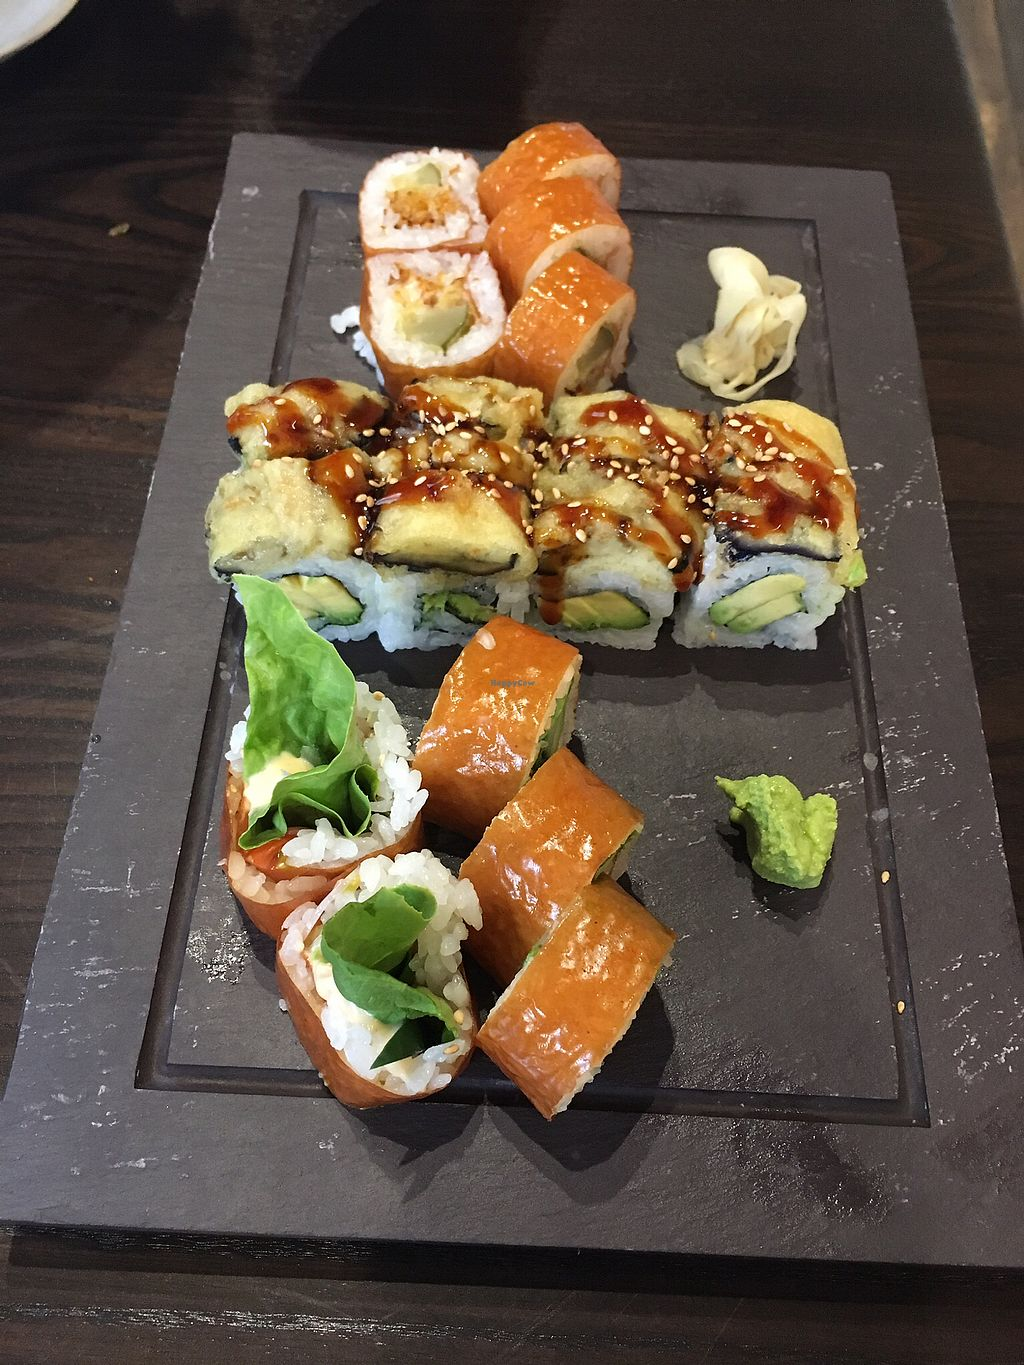 "Photo of Blue Sushi Sake Grill  by <a href=""/members/profile/HeartStrong"">HeartStrong</a> <br/>Three vegan rolls <br/> September 12, 2017  - <a href='/contact/abuse/image/94146/303664'>Report</a>"